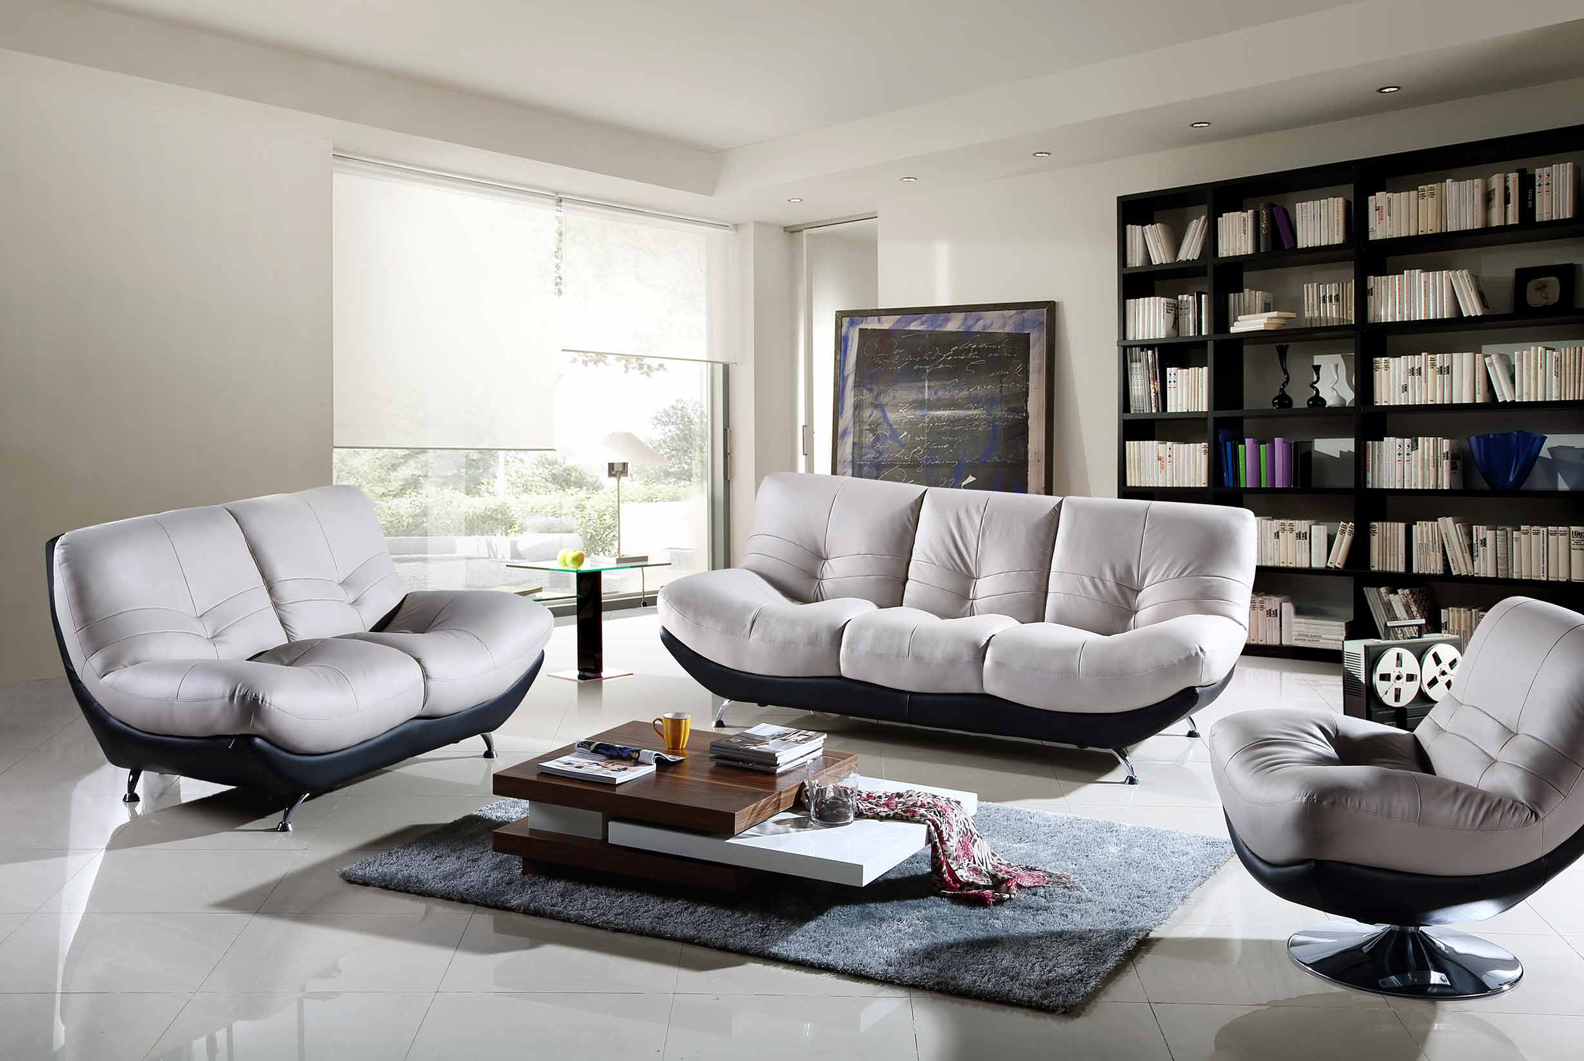 Furniture Contemporary Living Room Furniture Unique On With Design Ideas Zachary Horne 7 Contemporary Living Room Furniture Remarkable On Intended For Com Wp Content Uploads 2017 12 C 8 Contemporary Living Room